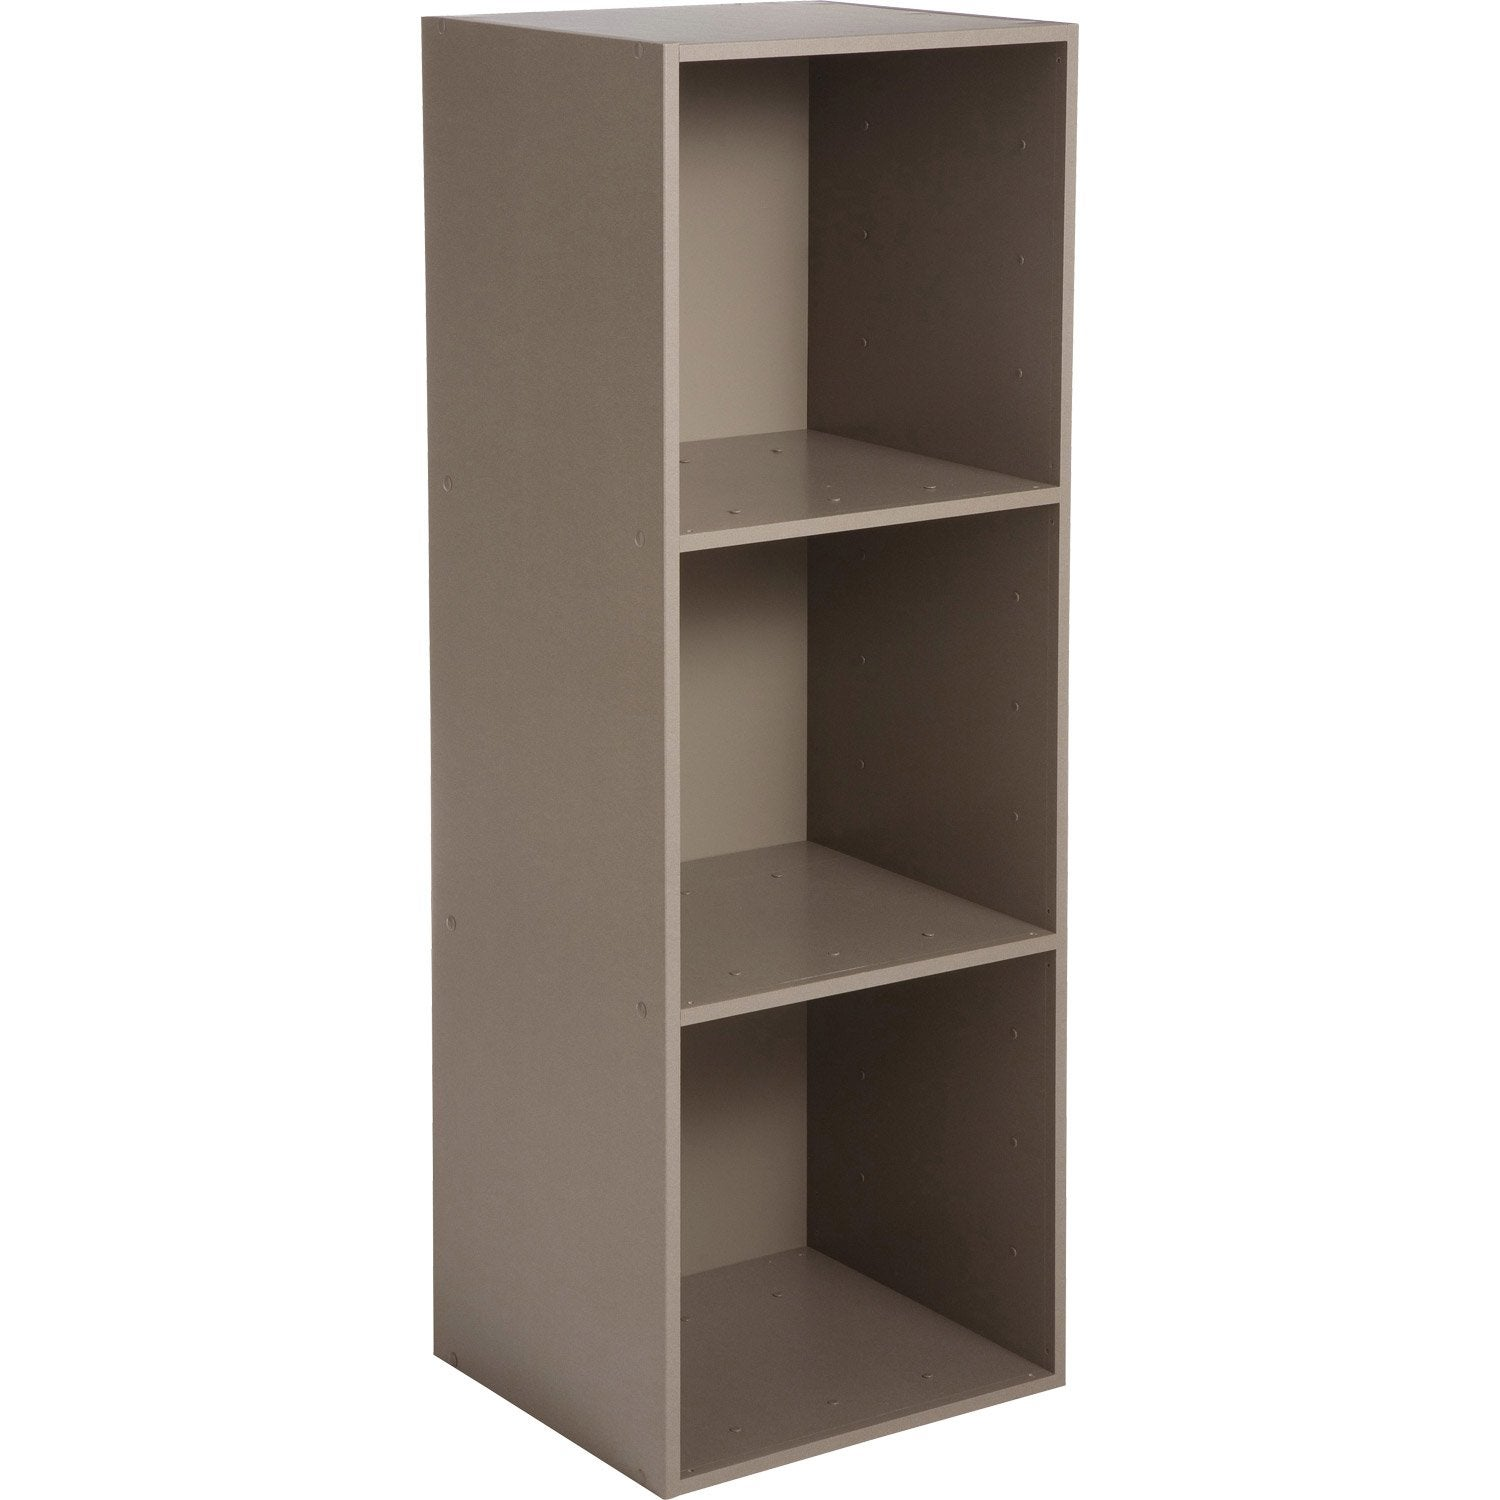 Etag re 3 cases multikaz taupe x x cm leroy merlin - Etagere bois leroy merlin ...